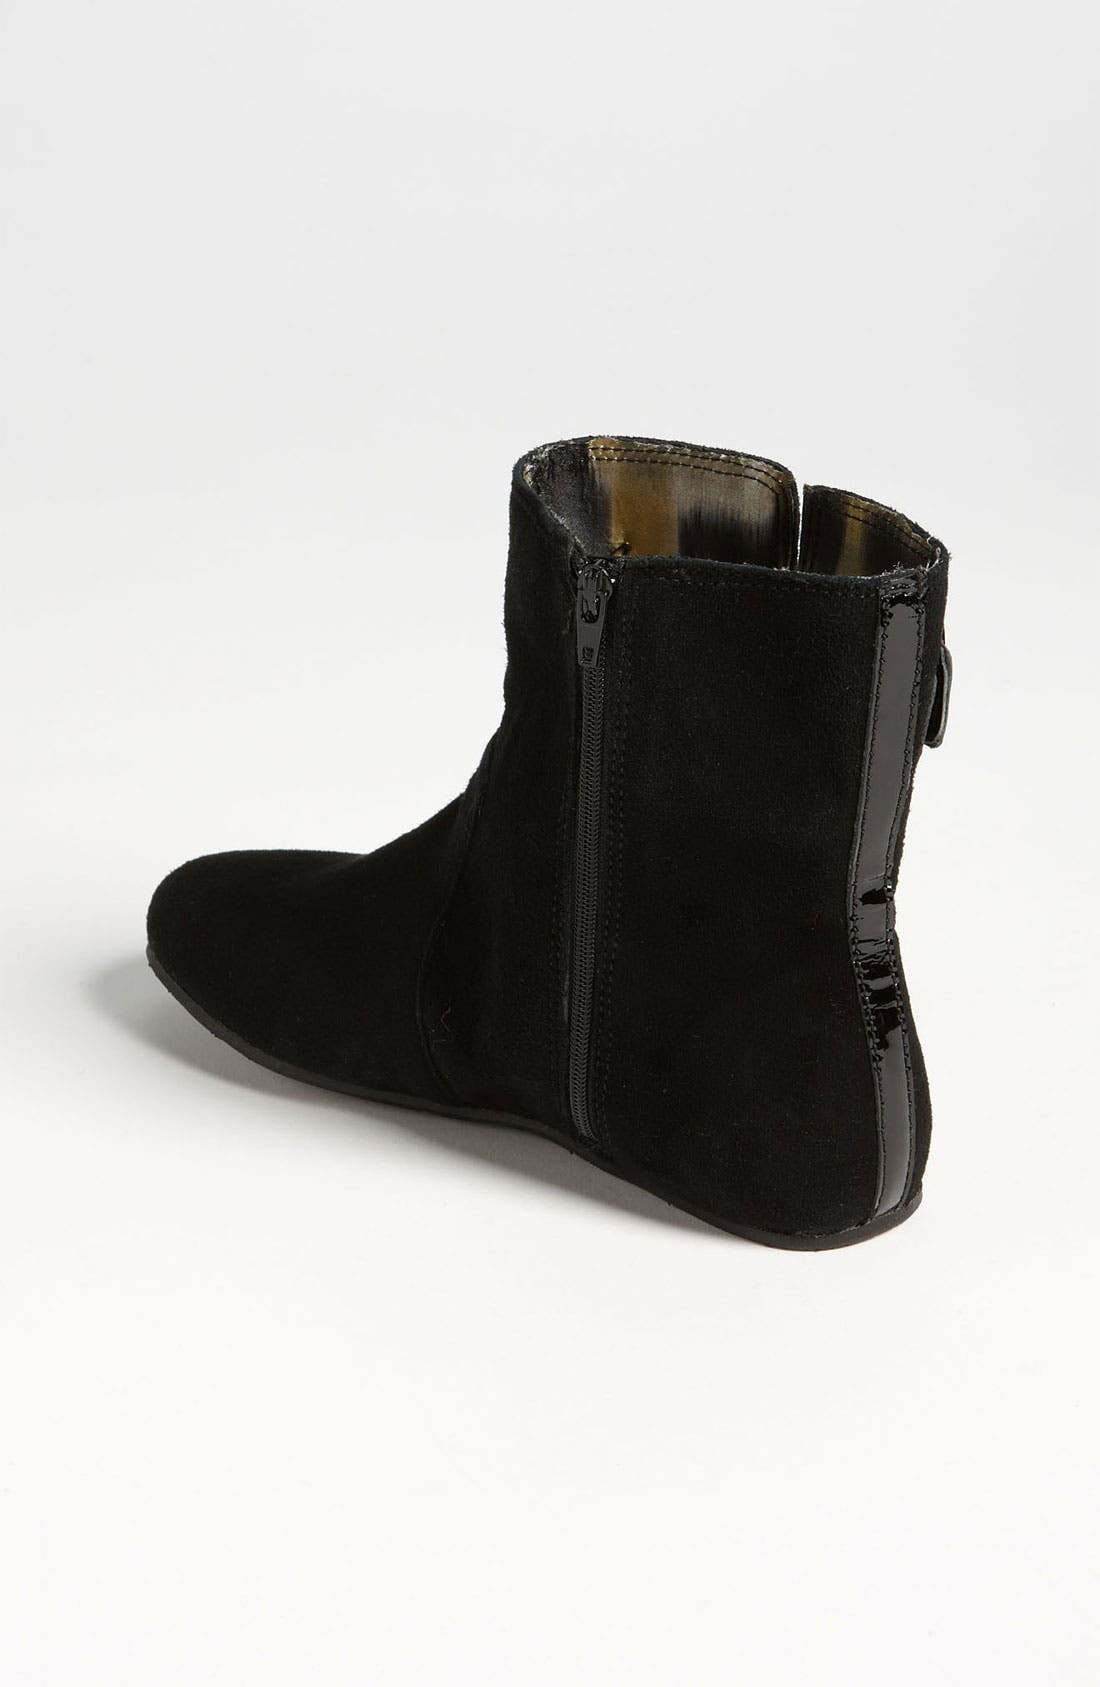 Alternate Image 2  - Juicy Couture 'Rebbie' Boot (Toddler, Little Kid & Big Kid)